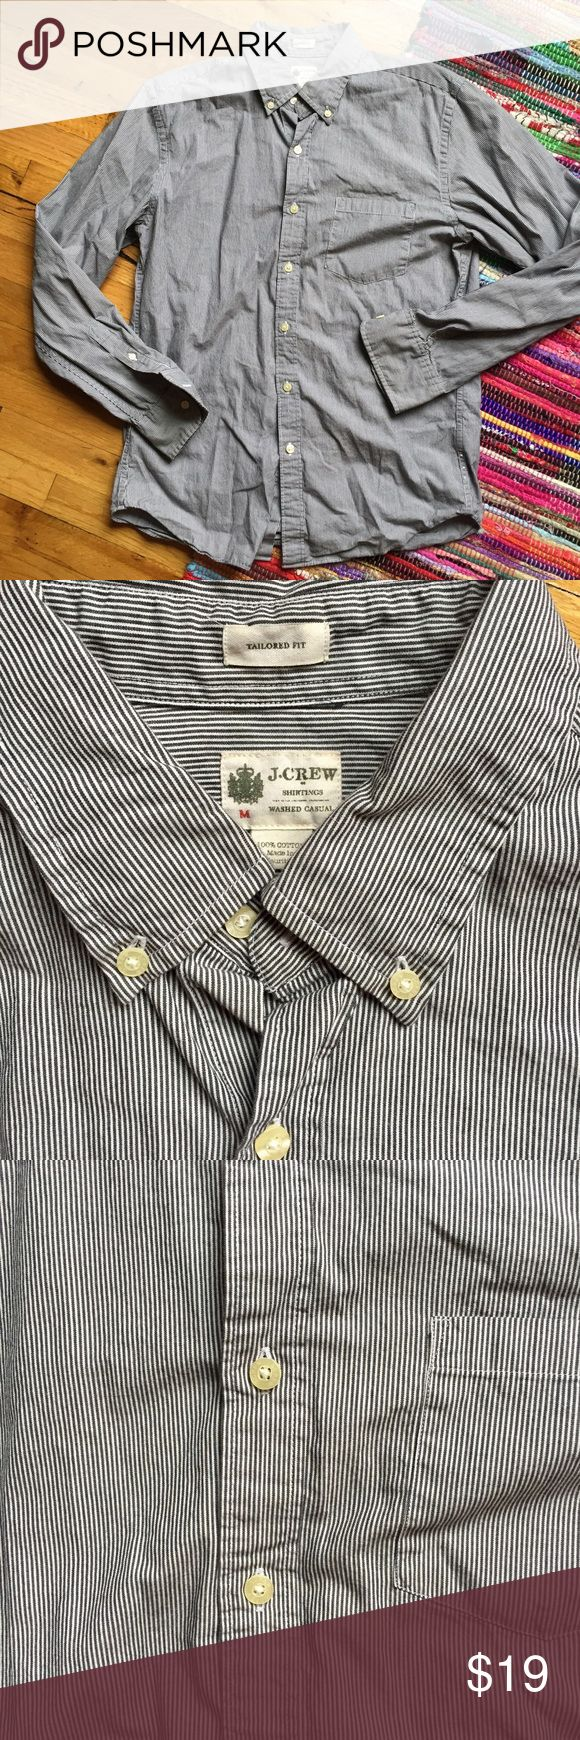 J. Crew Men's stripped button down J Crew Men's long sleeve stripped button down shirt, good condition! Great basic button up shirt, versatile for so many occasions, closet staple relaxed fit. 100% cotton, washed-casual look J Crew Shirts Casual Button Down Shirts